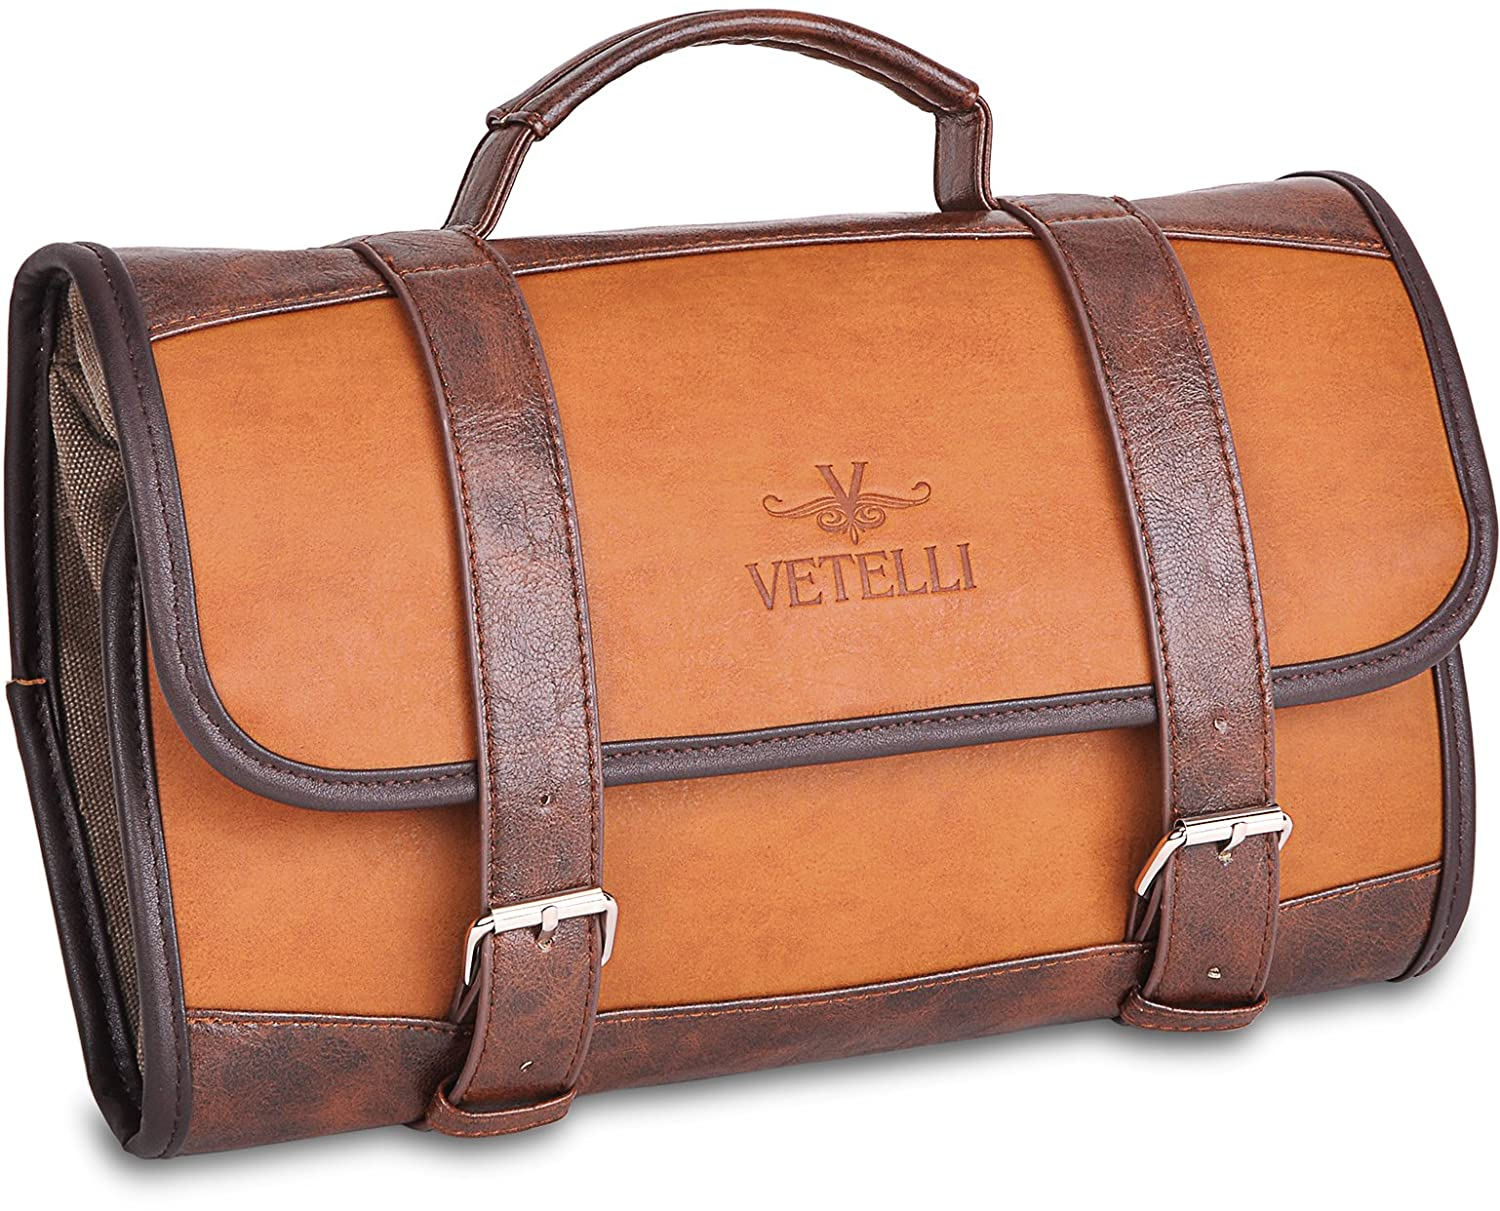 Vetelli Hanging Toiletry Bag for Men - Dopp Kit/Travel Accessories Bag/Great Gift